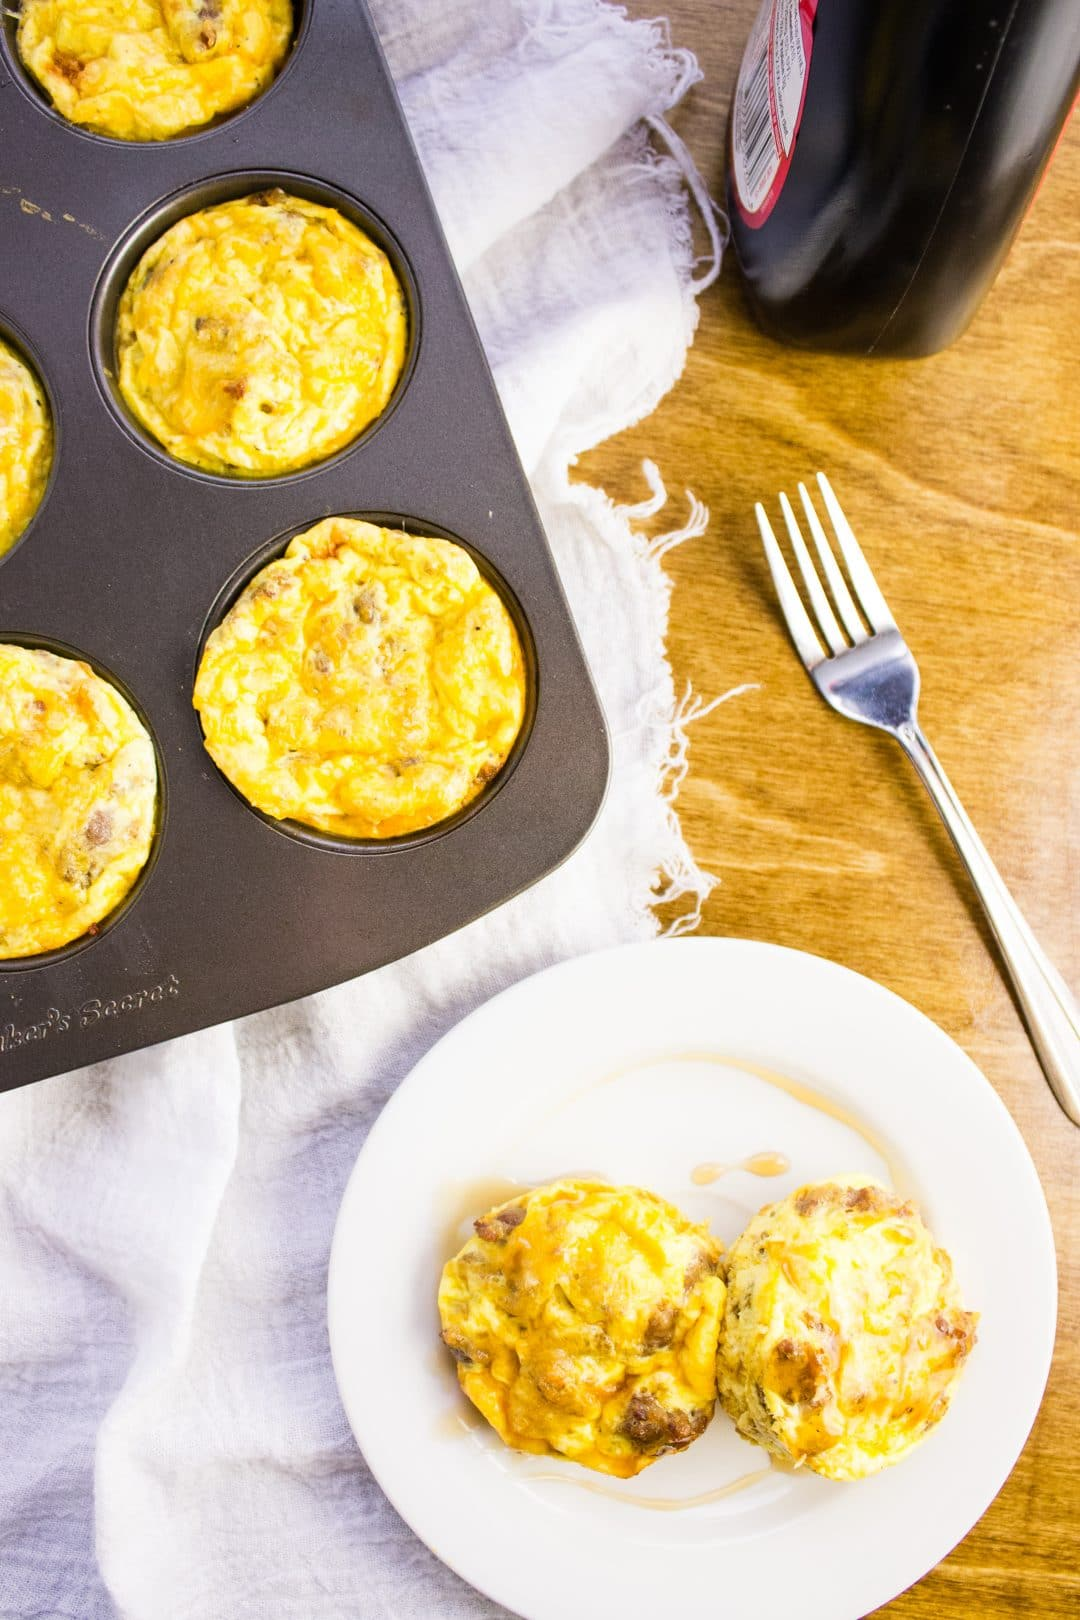 Pancake Egg Cups - Start your day off right with mini pancakes, sausage, and egg in a delicious muffin cup. Easy to make and perfect for travel. simplylakita.com #breakfast